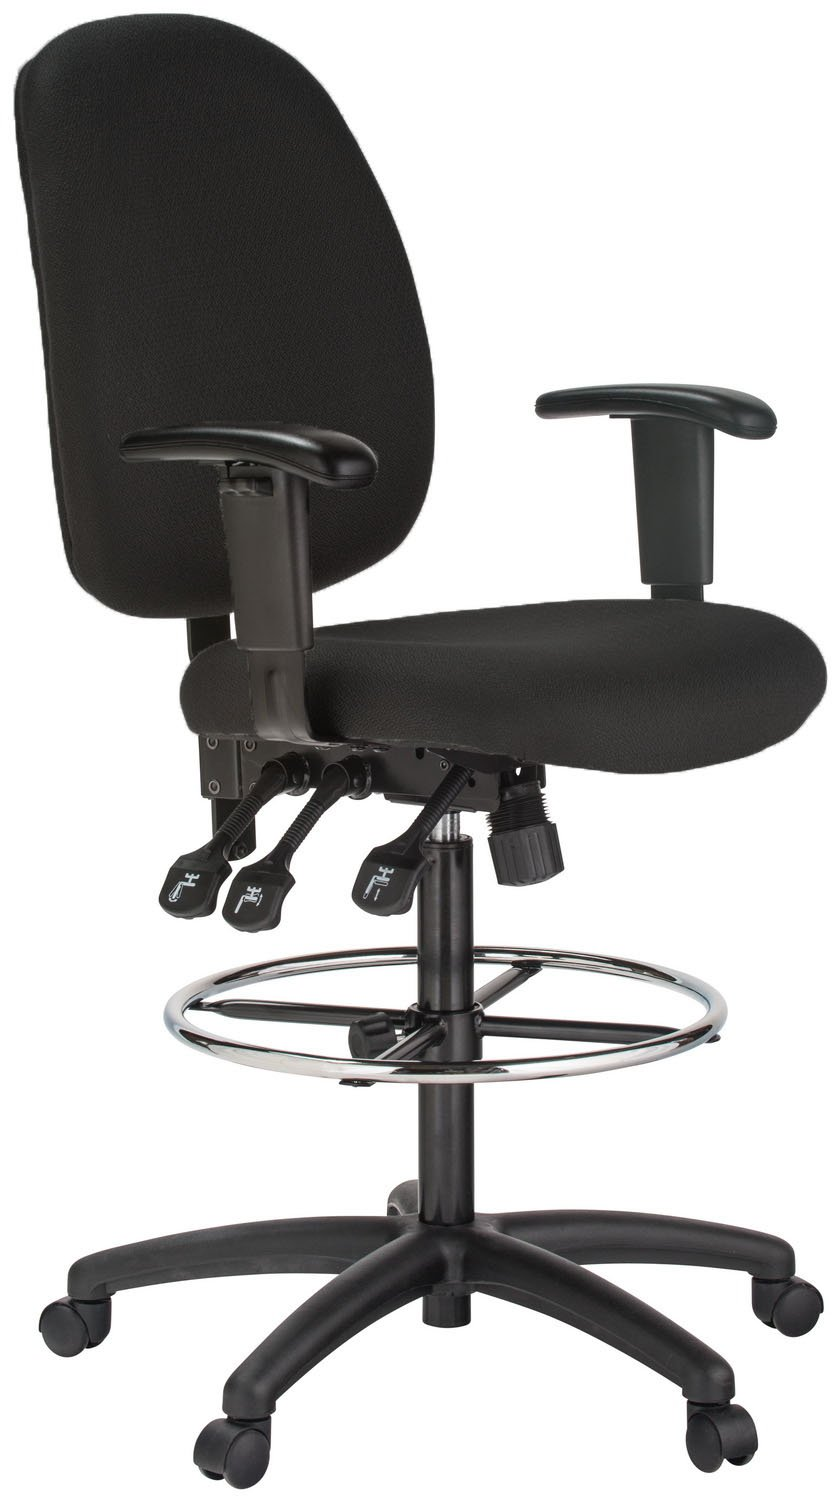 Harwick 6058C-D-BK Extra Tall Ergonomic Drafting Chair, Black Fabric by Harwick